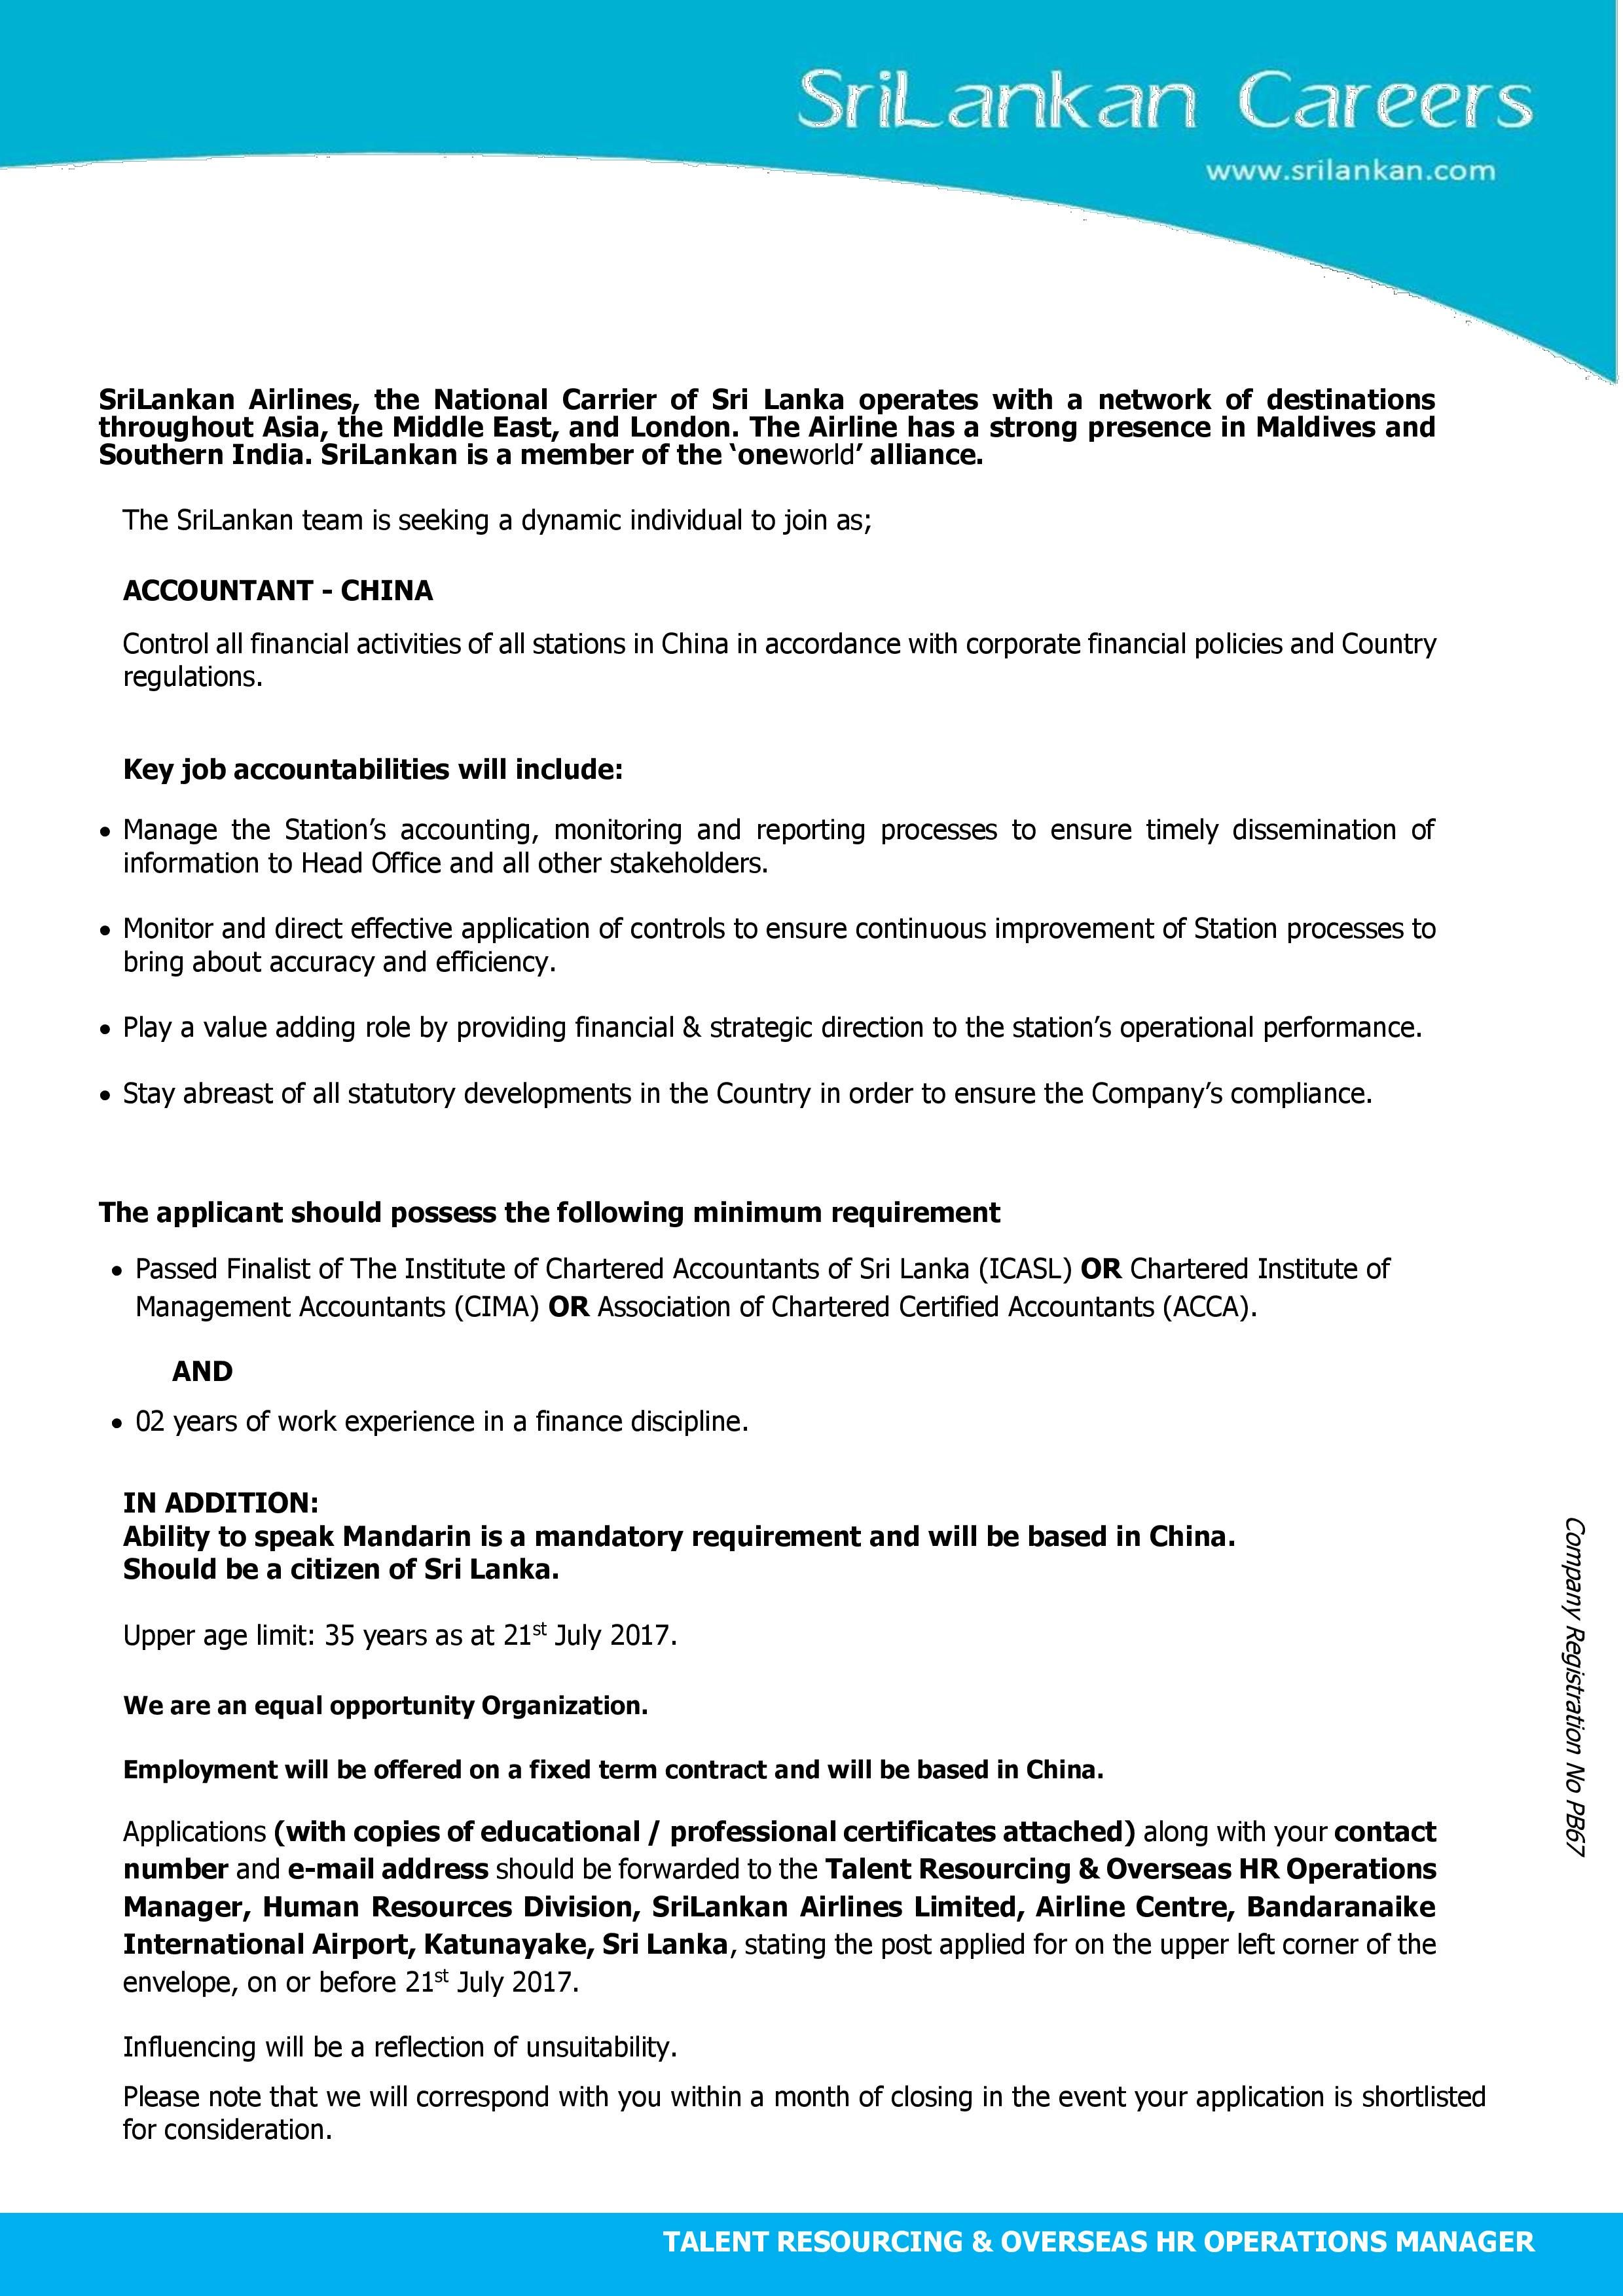 Accountant - China at Sri Lankan Airlines   CareerFirst   Government